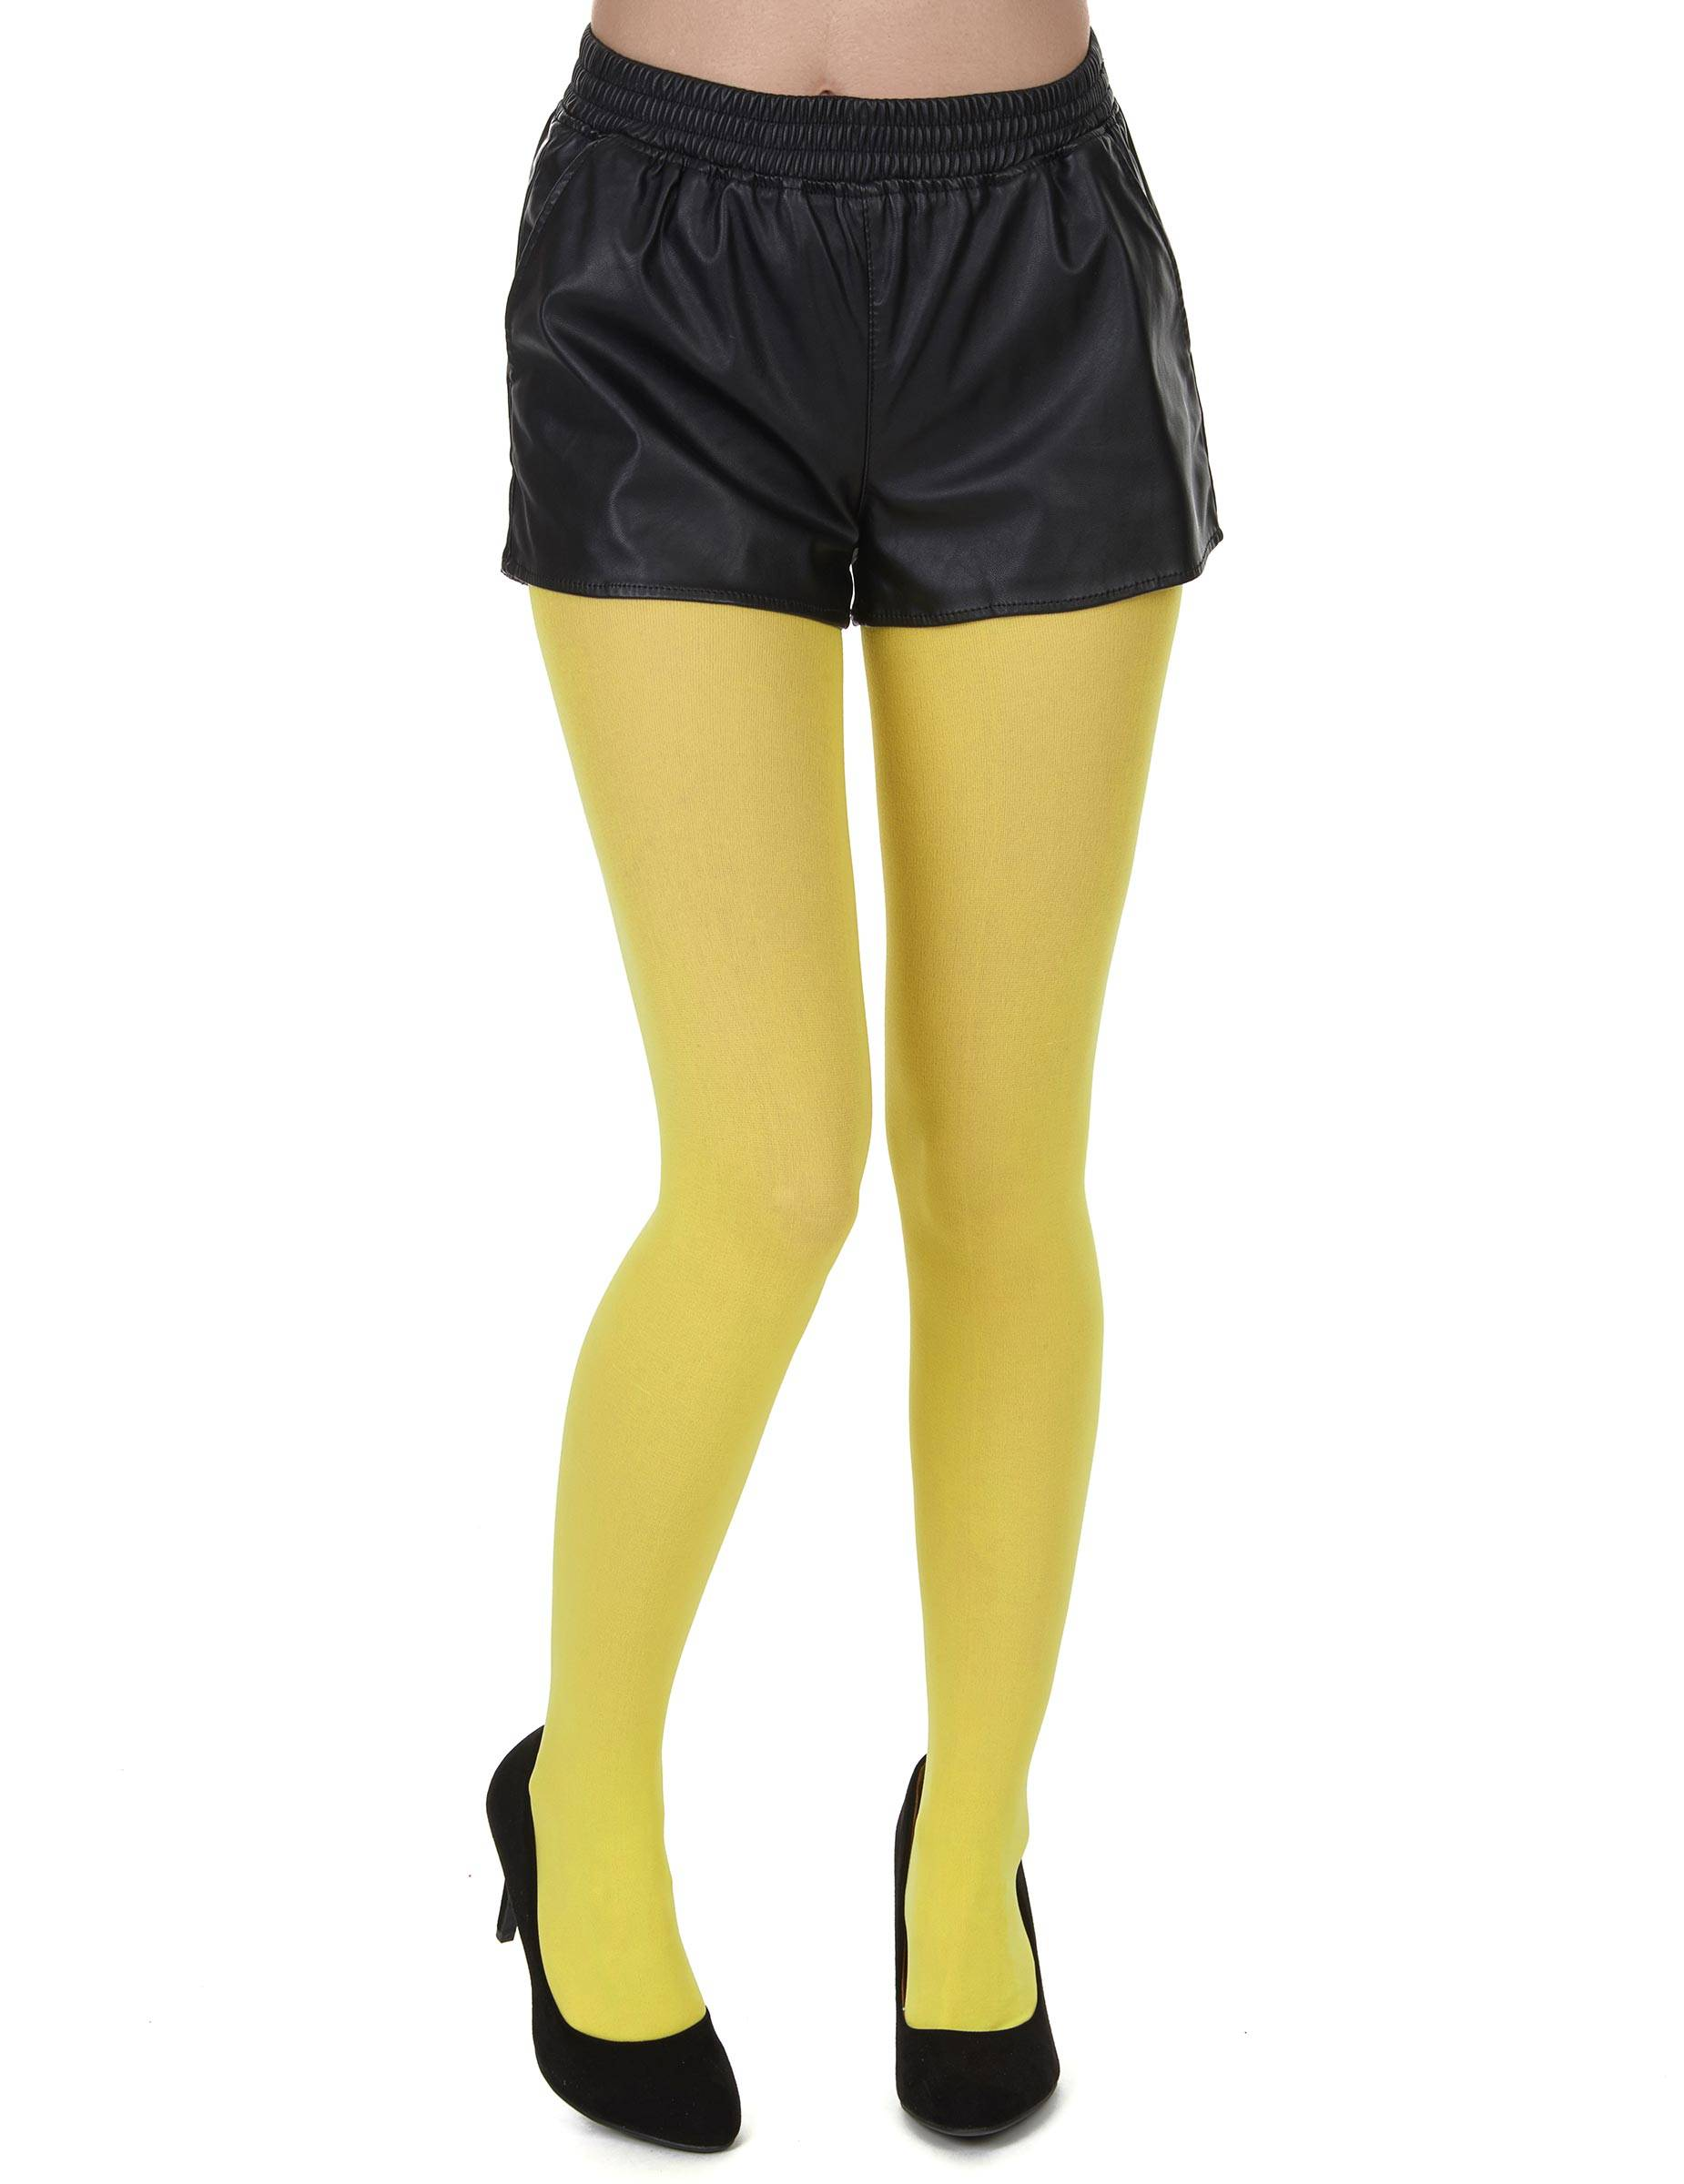 Deguisetoi Collants opaques jaunes adulte - Taille: XL